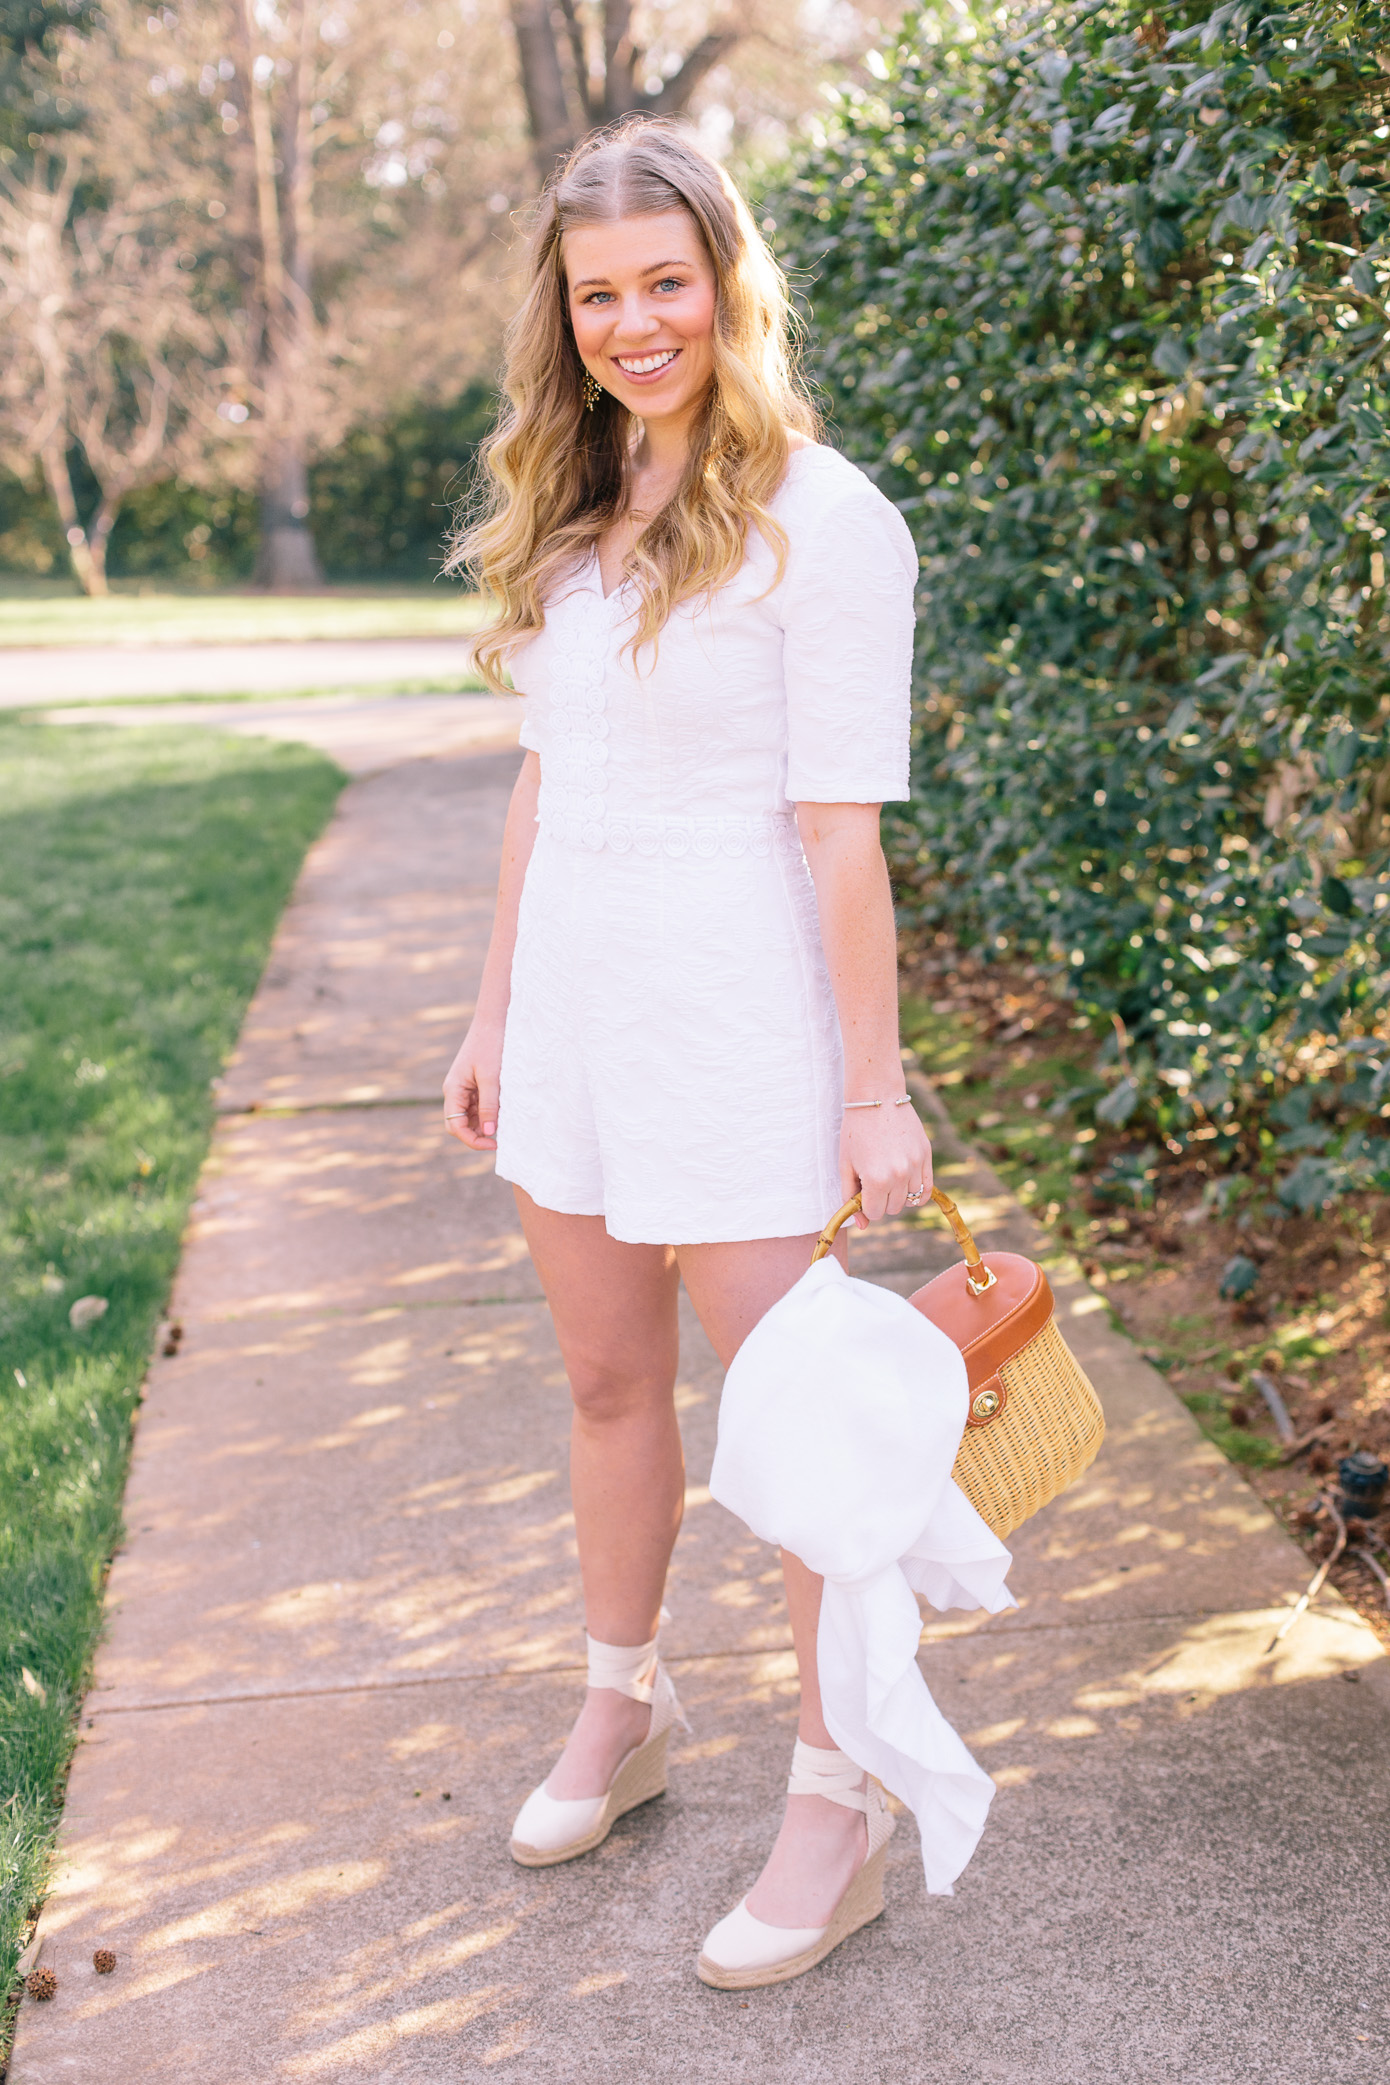 White Lace Romper for Engagement Party | Louella Reese Life & Style Blog